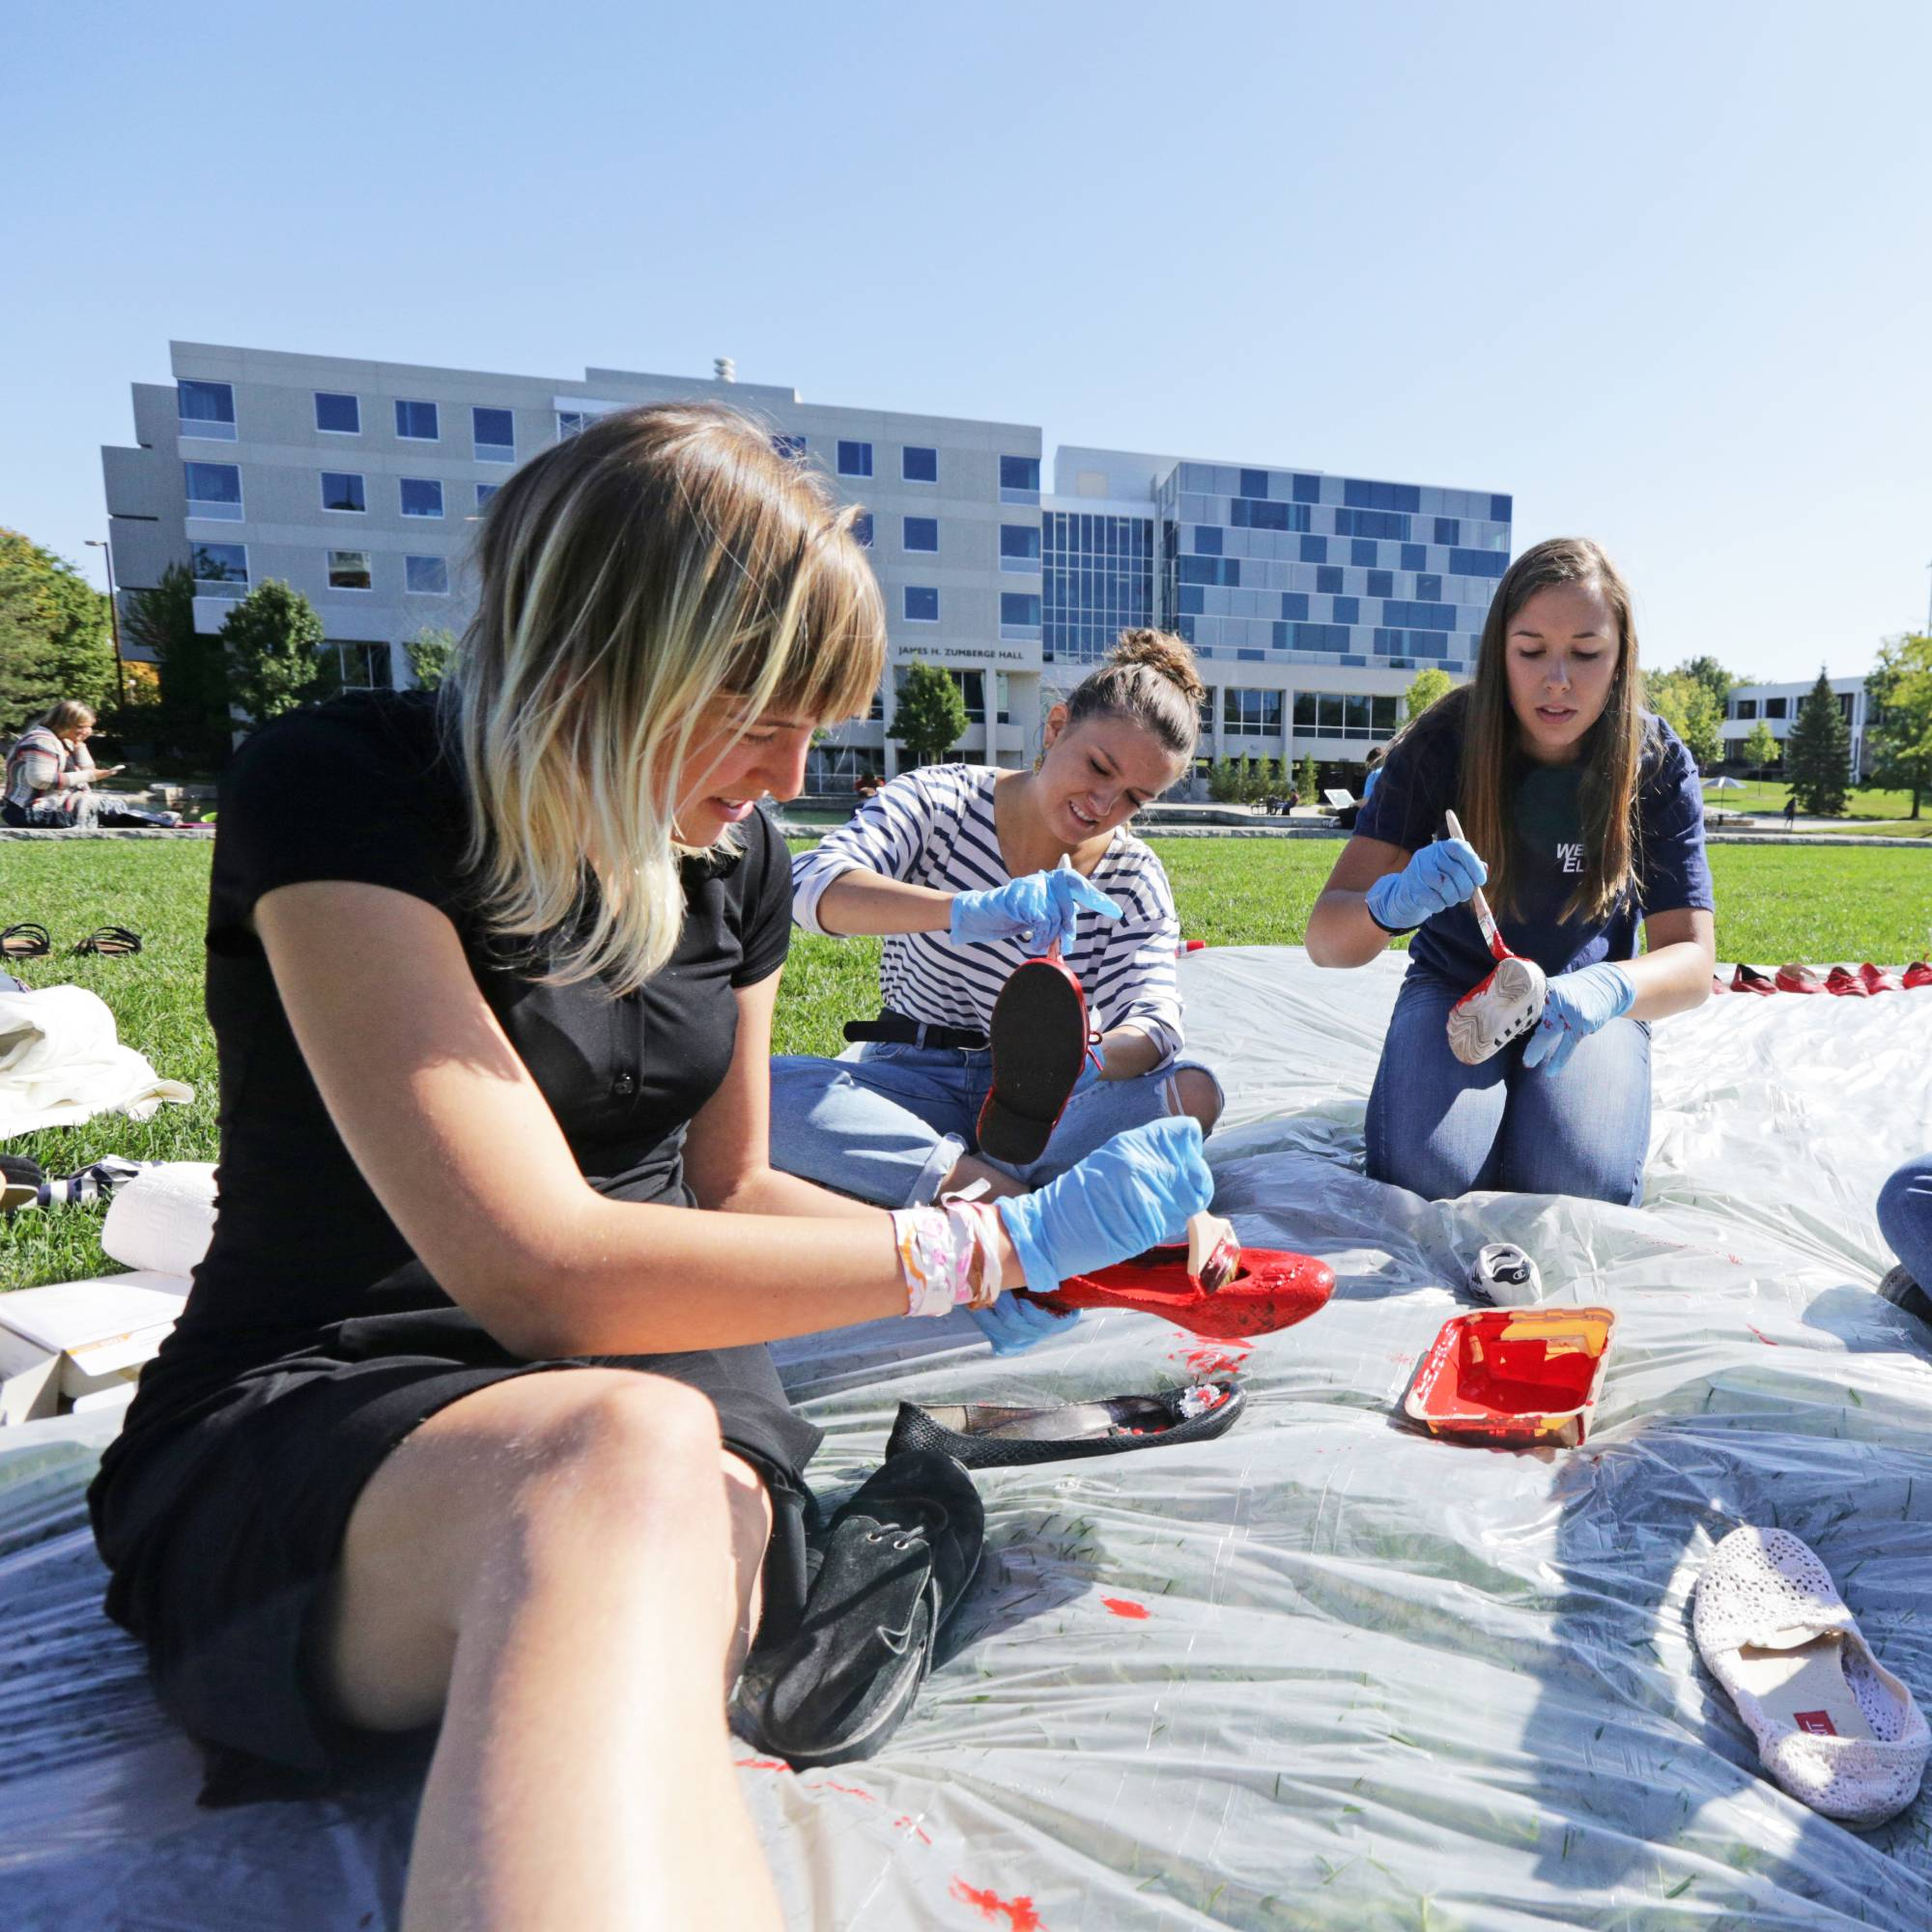 group of college students sitting on tarp in grass paying shoes red with brushes